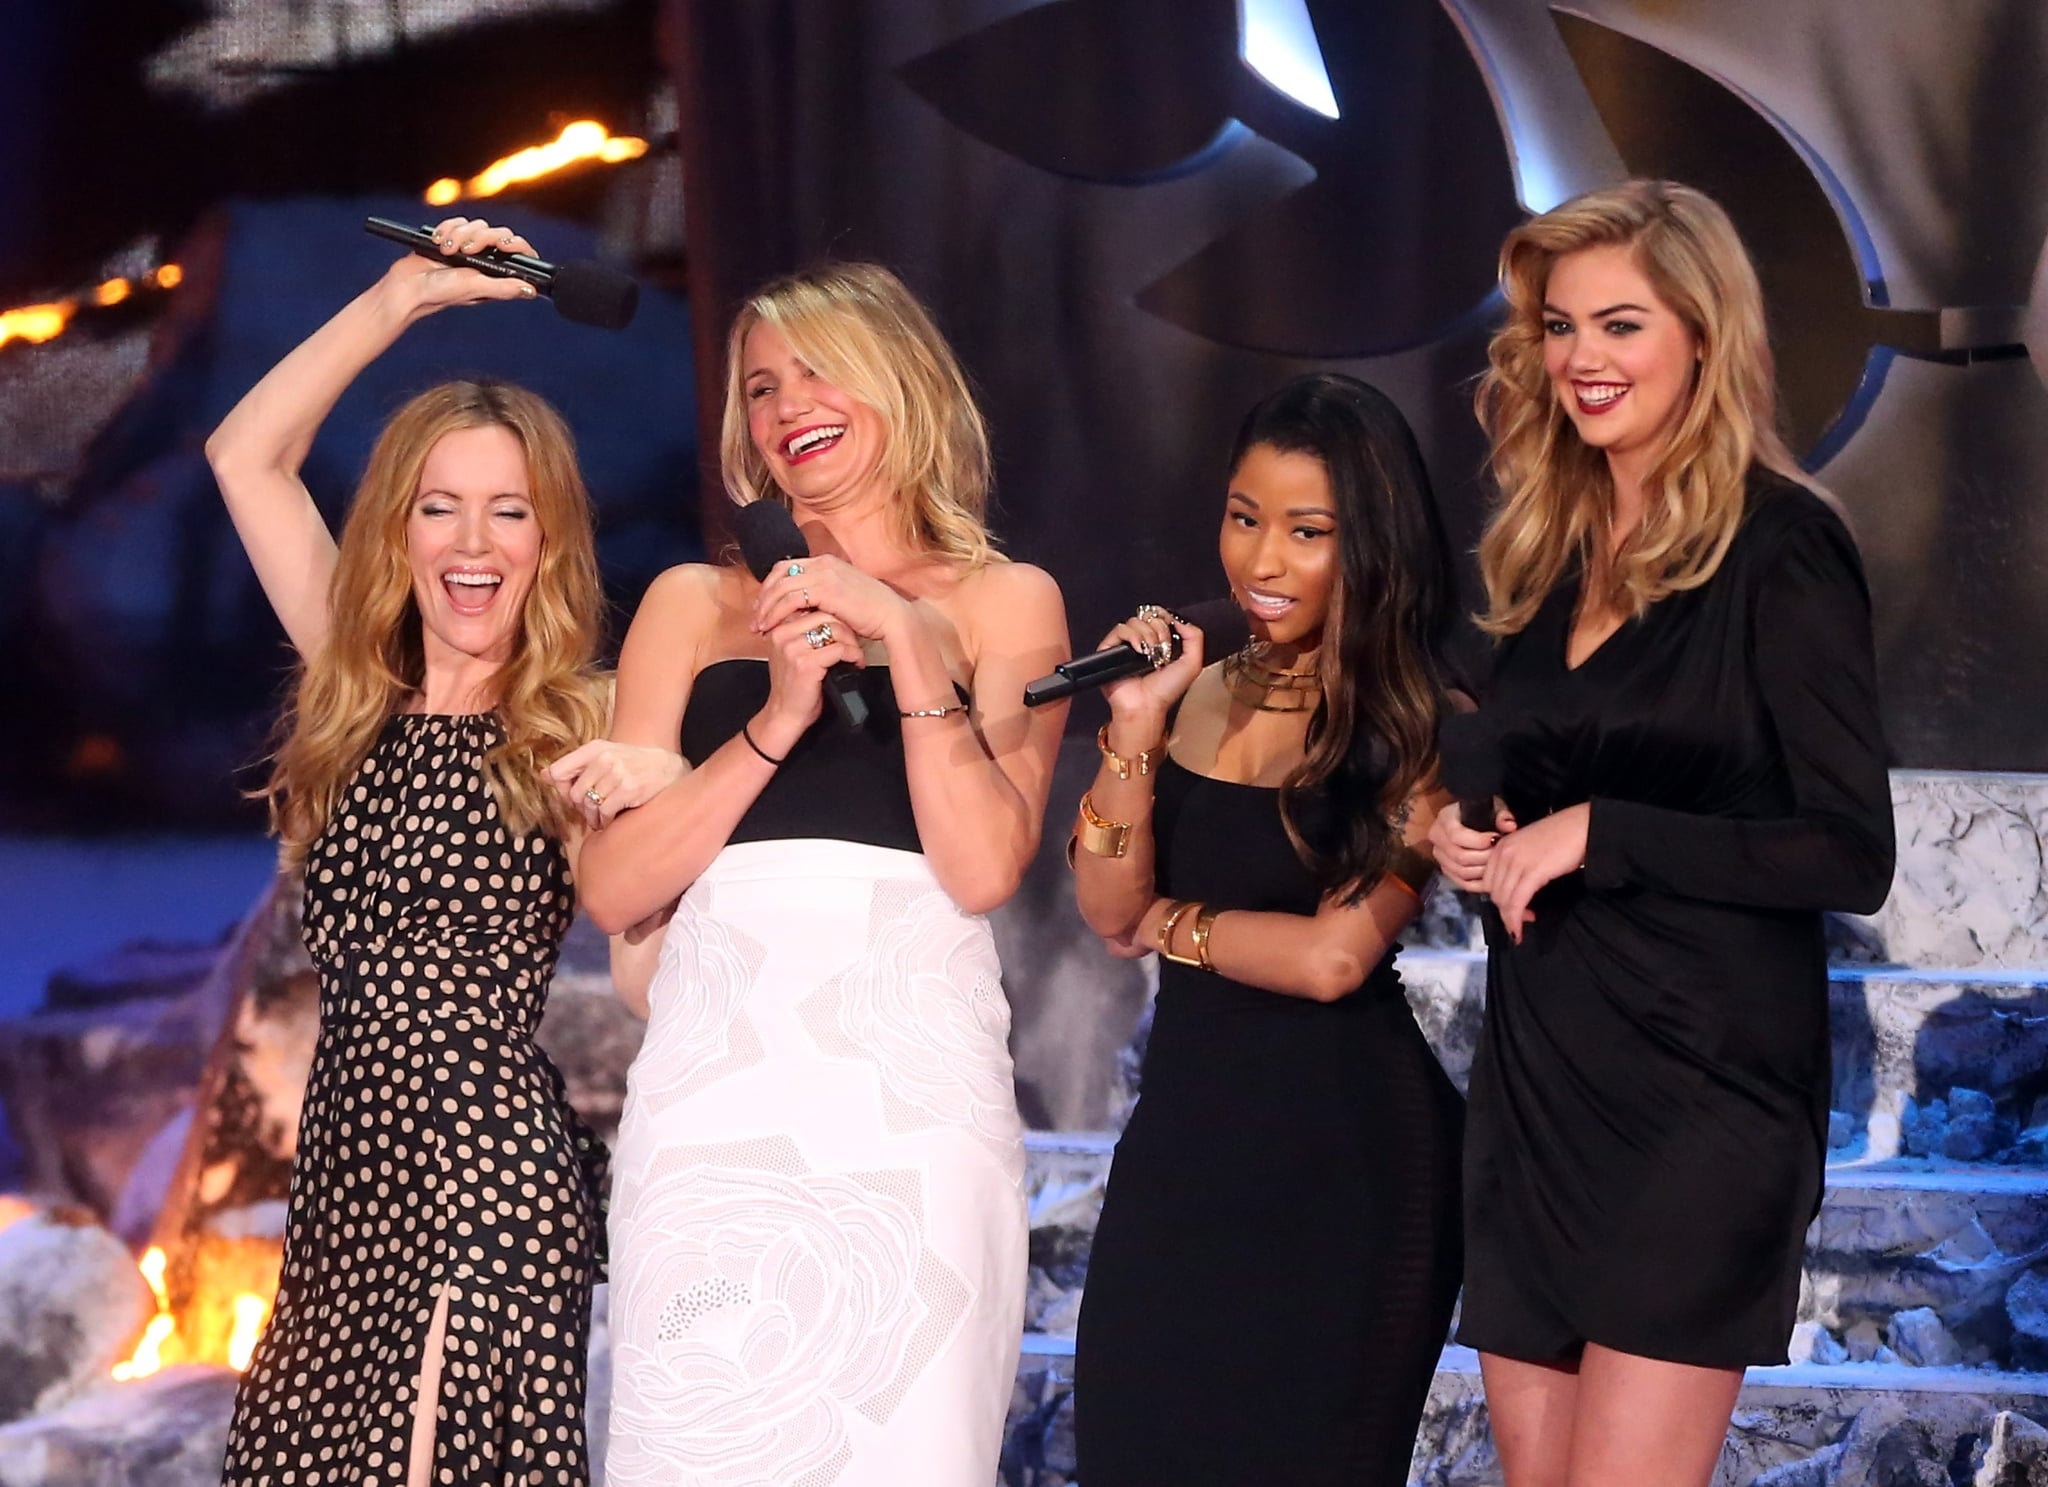 The cast of The Other Woman also brought the heat —and the laughs.